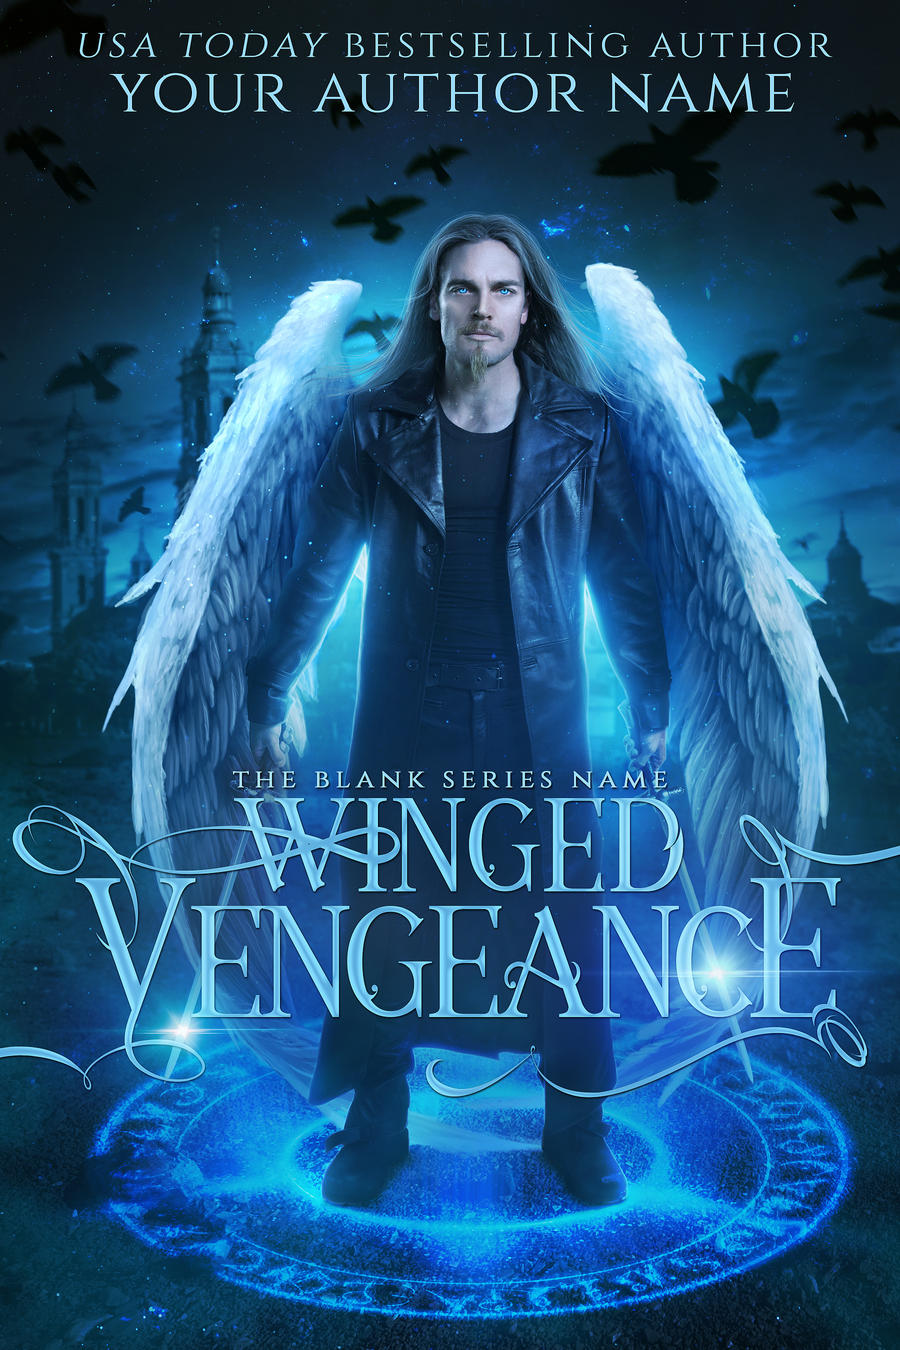 WINGED VENGEANCE premade book cover